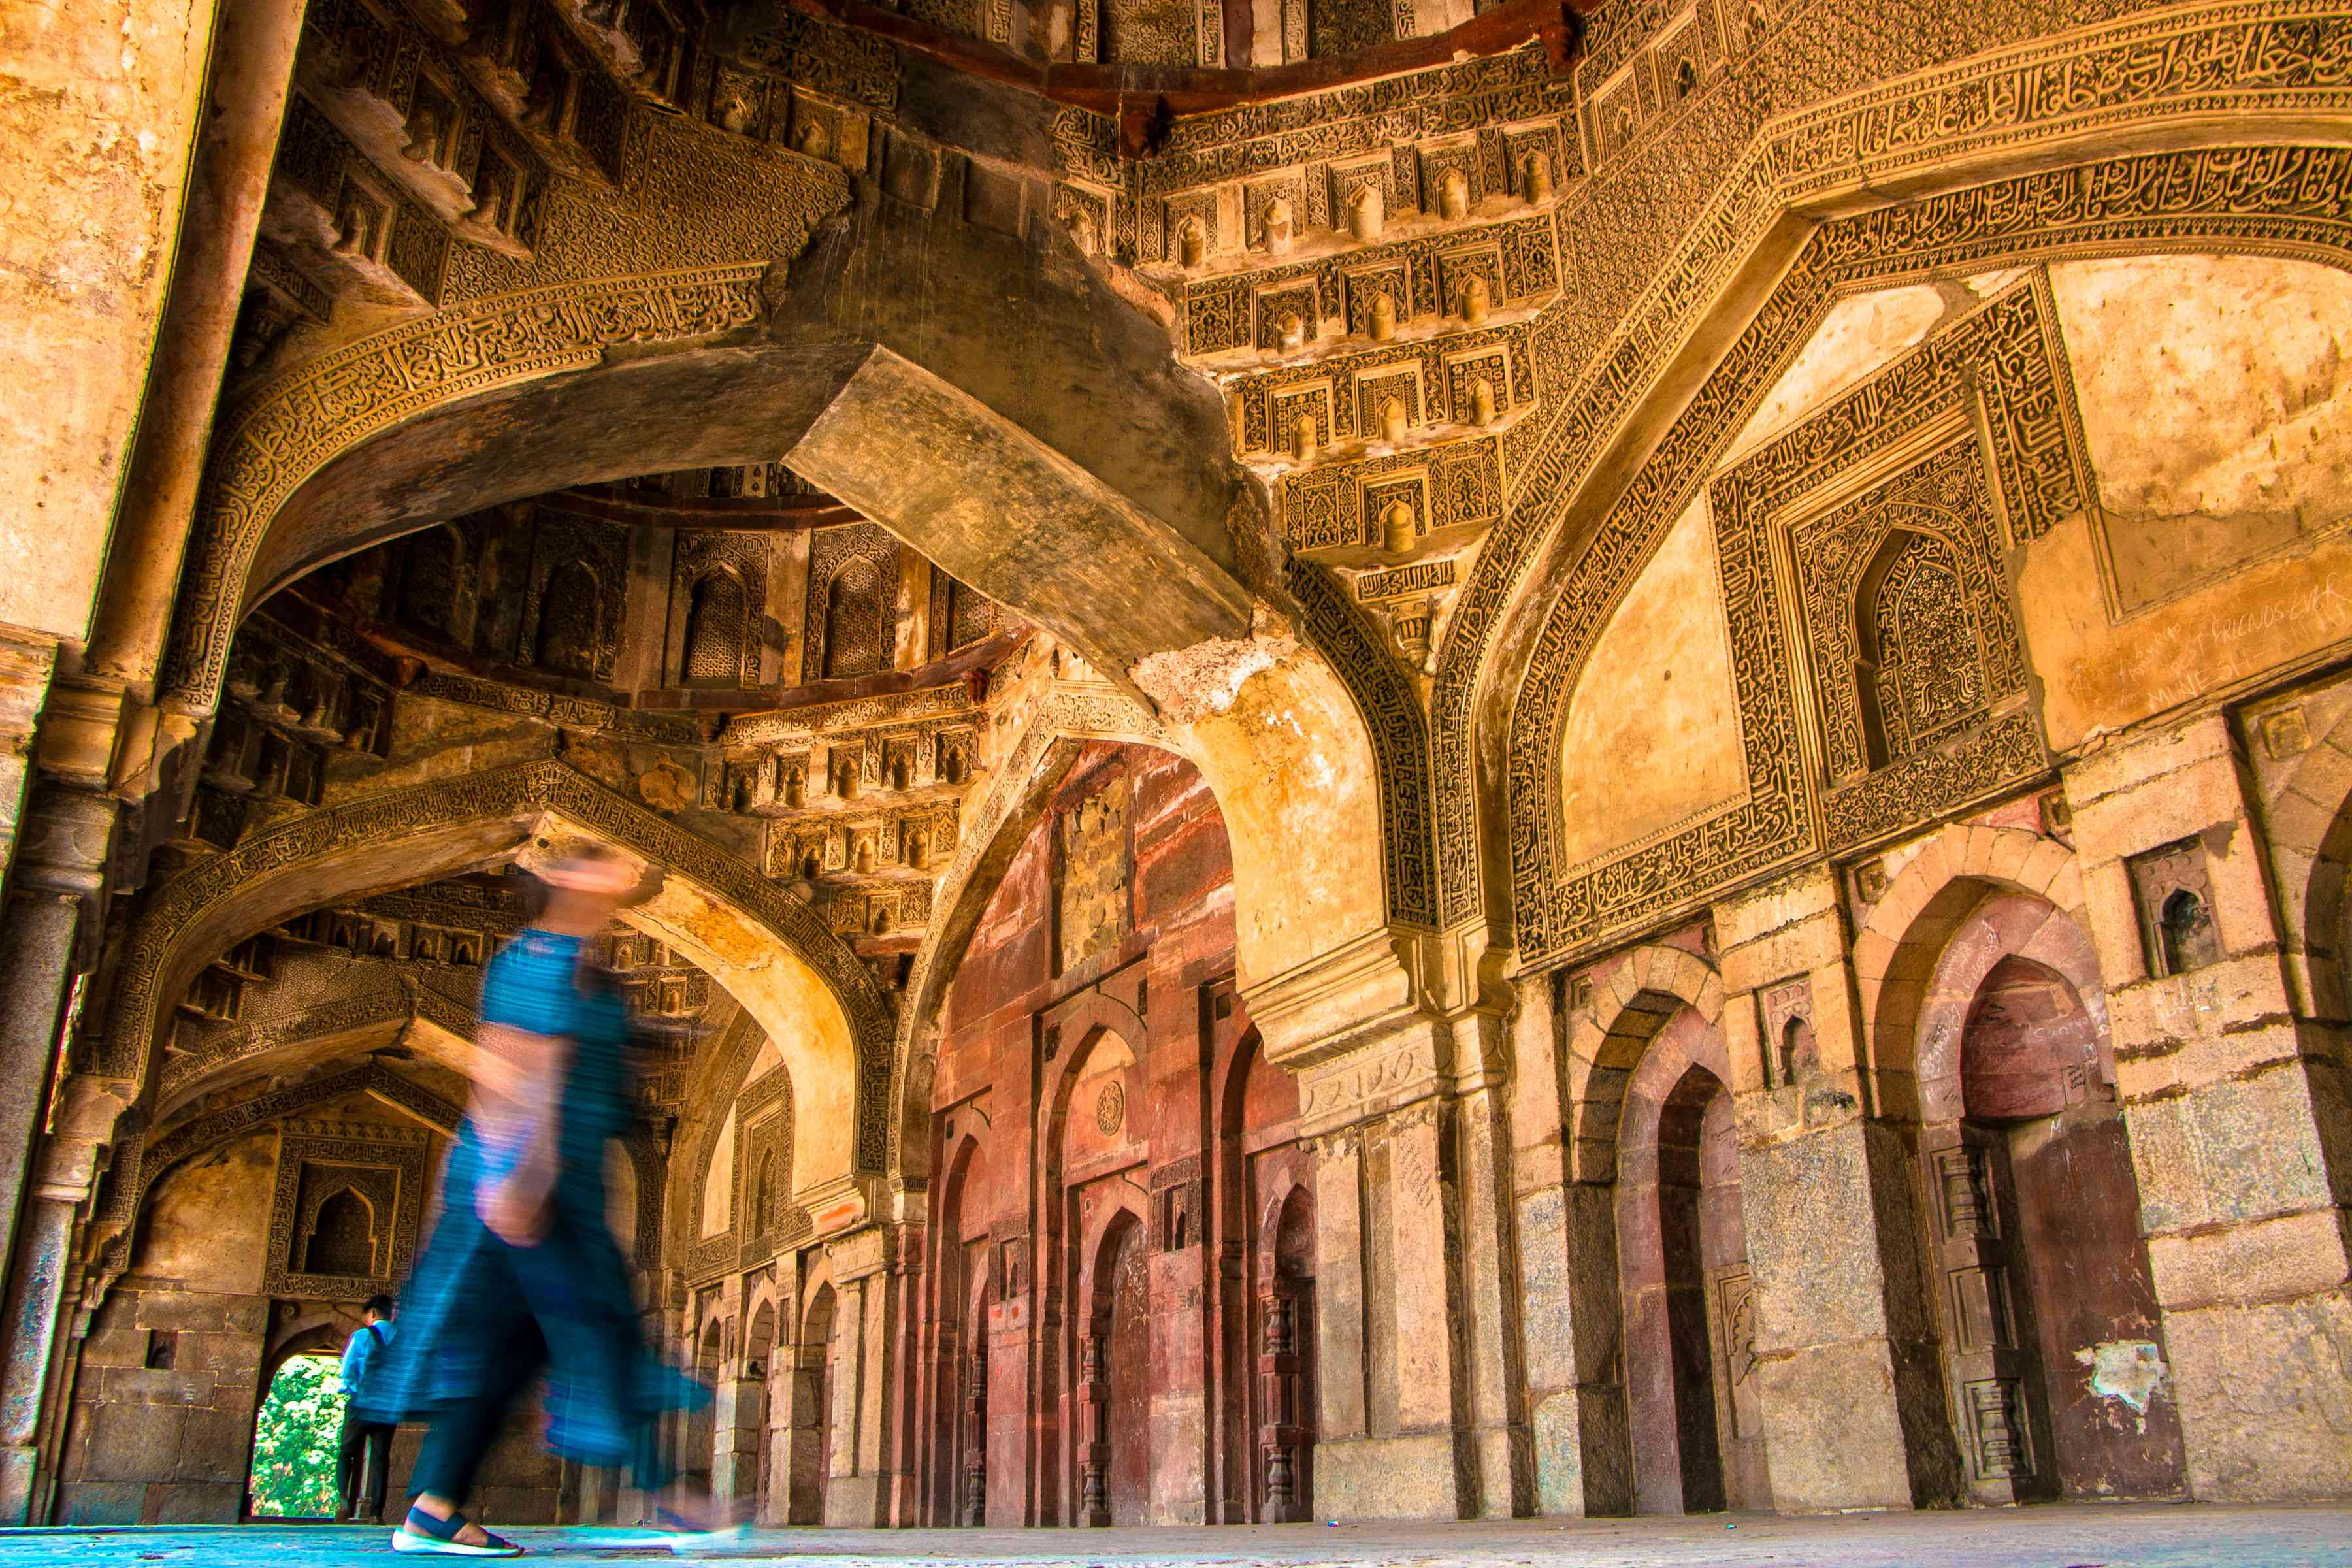 Time lapse of someone walking through the Bada Gumbad complex in Lodhi Gardens